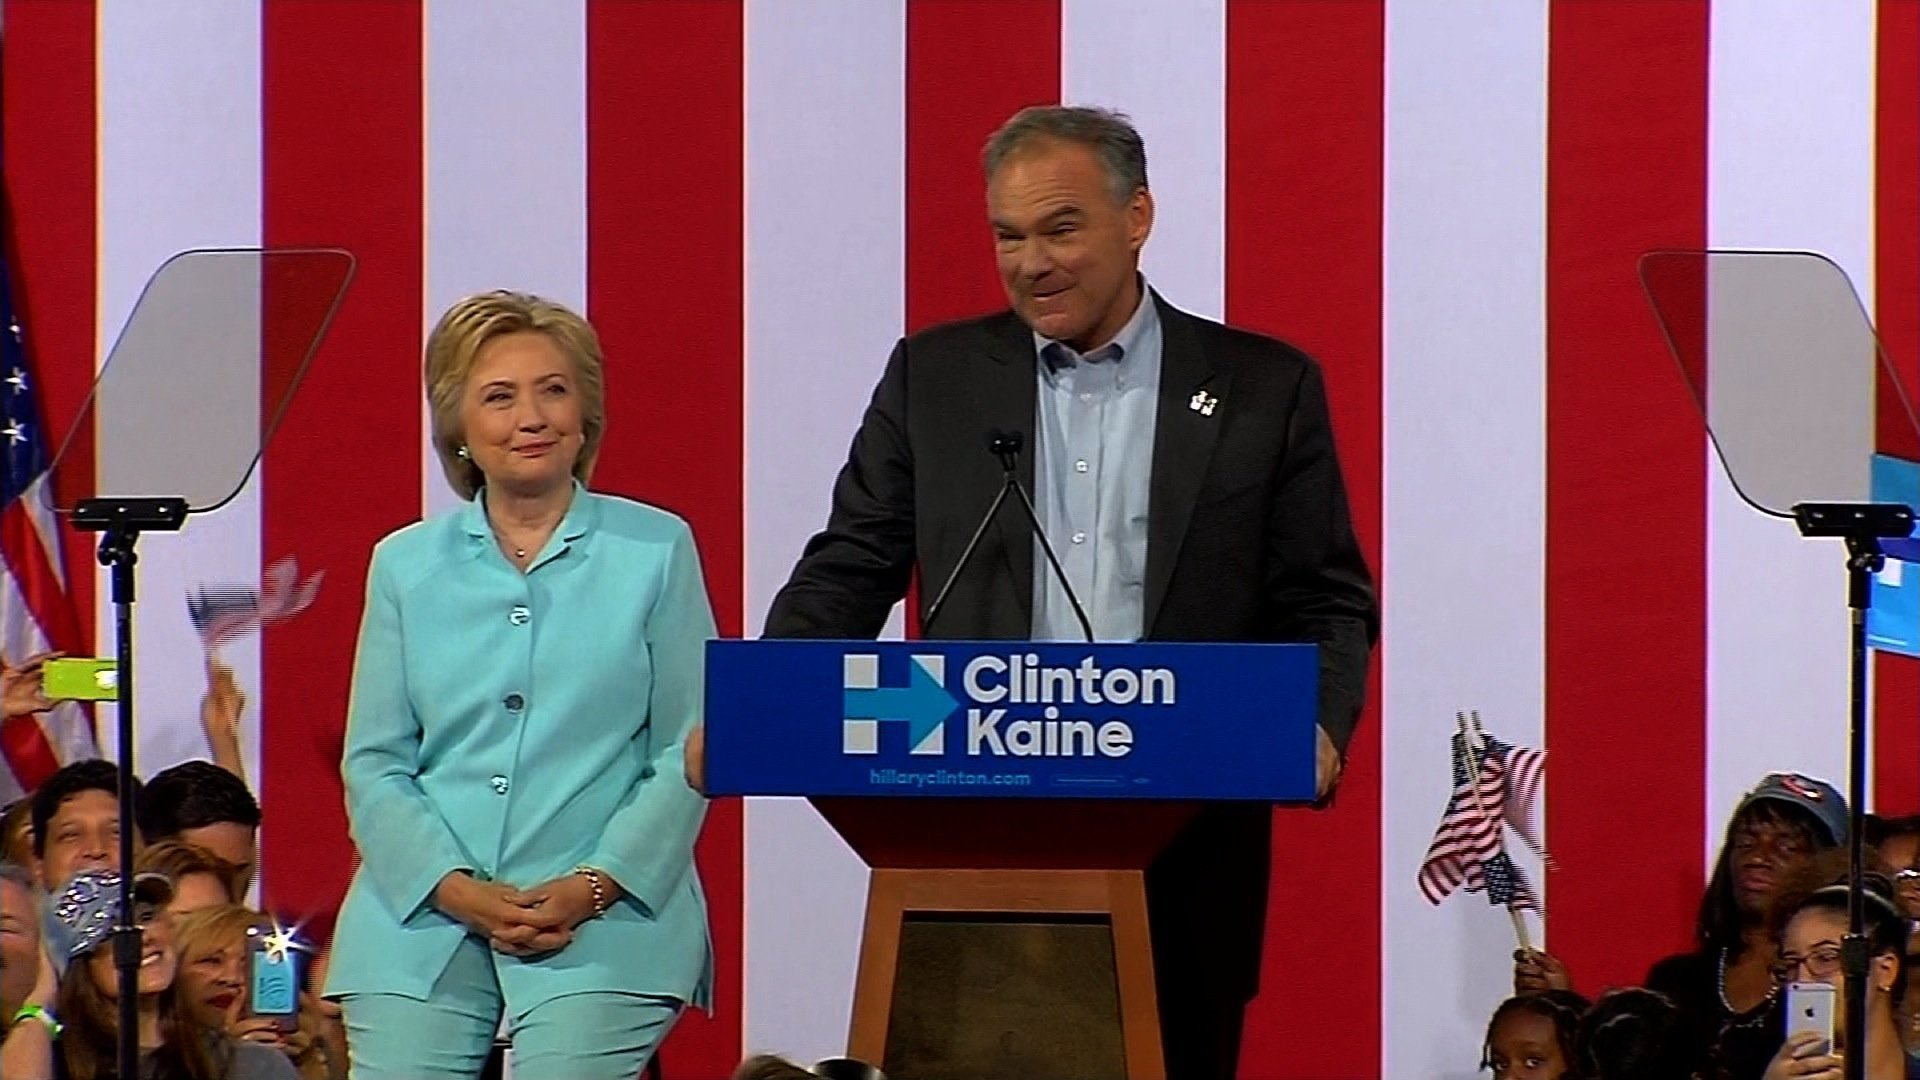 Kaine makes debut as Clinton running mate